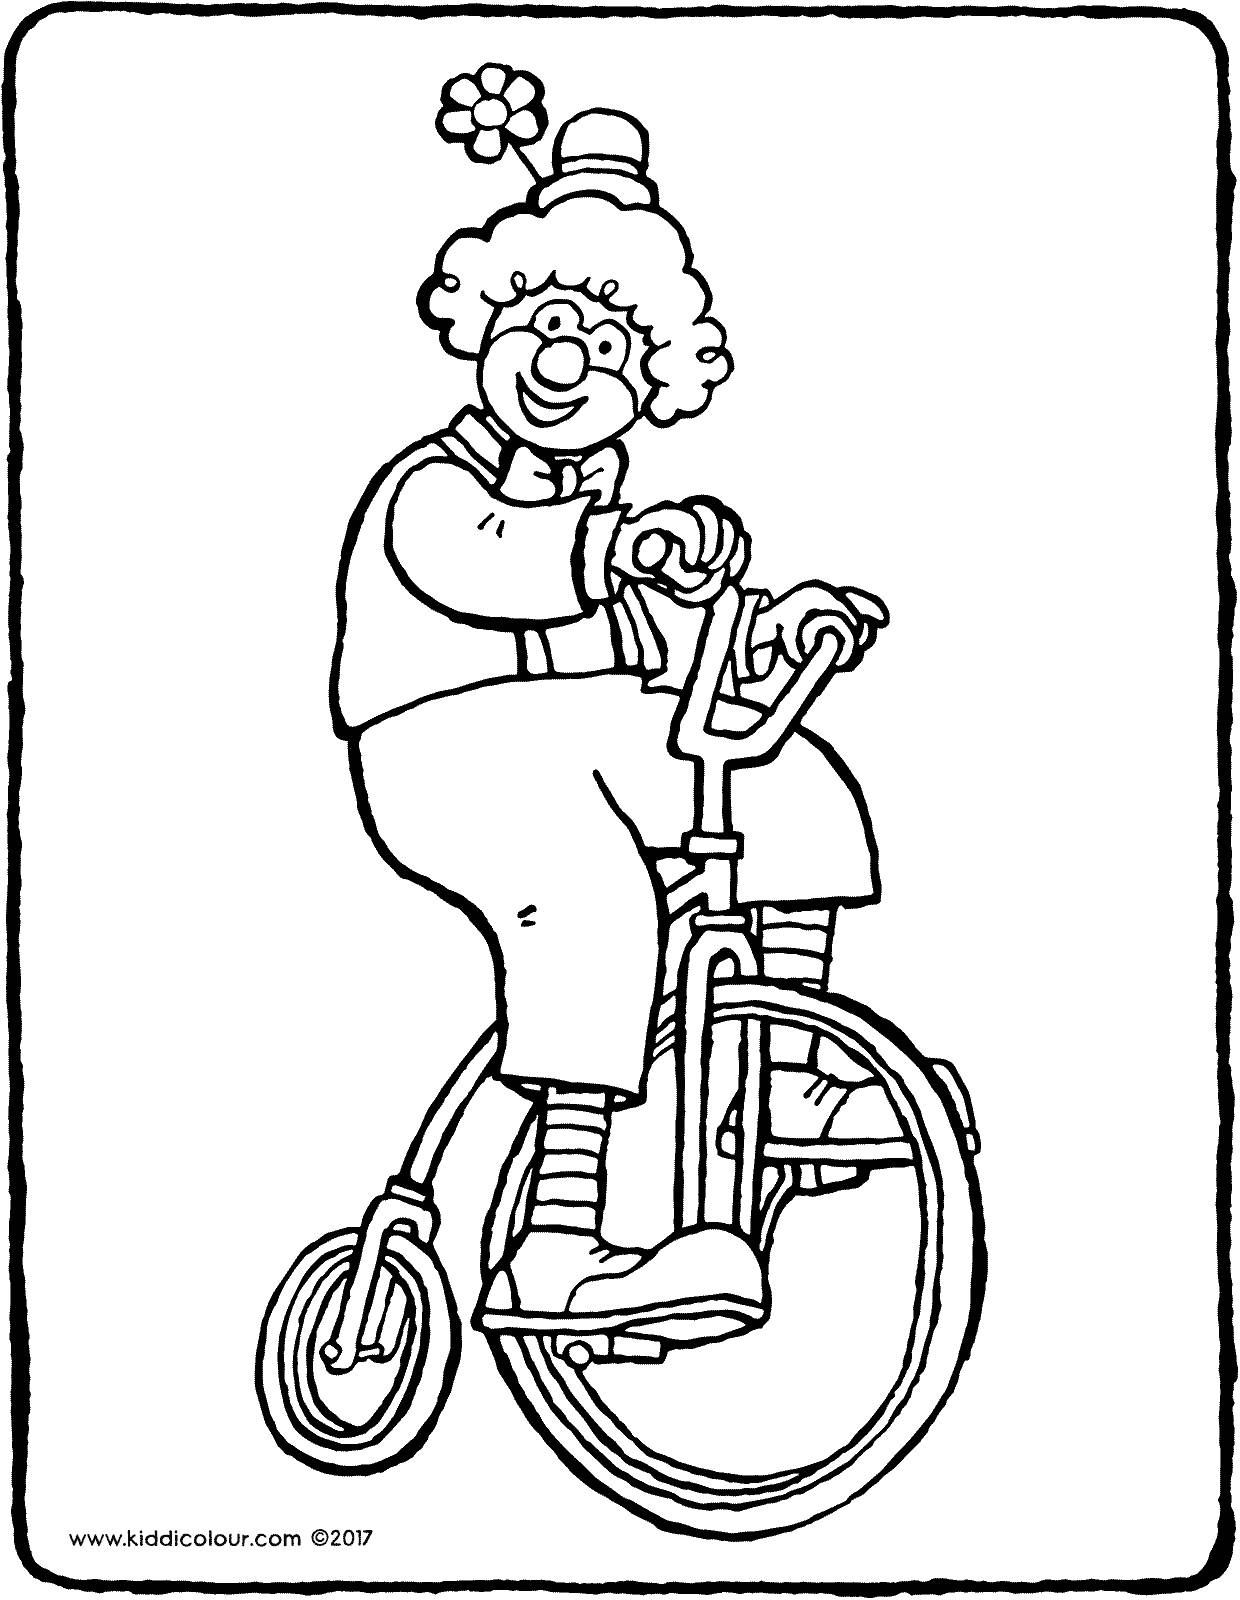 a clown on a bicycle colouring page drawing picture 01V